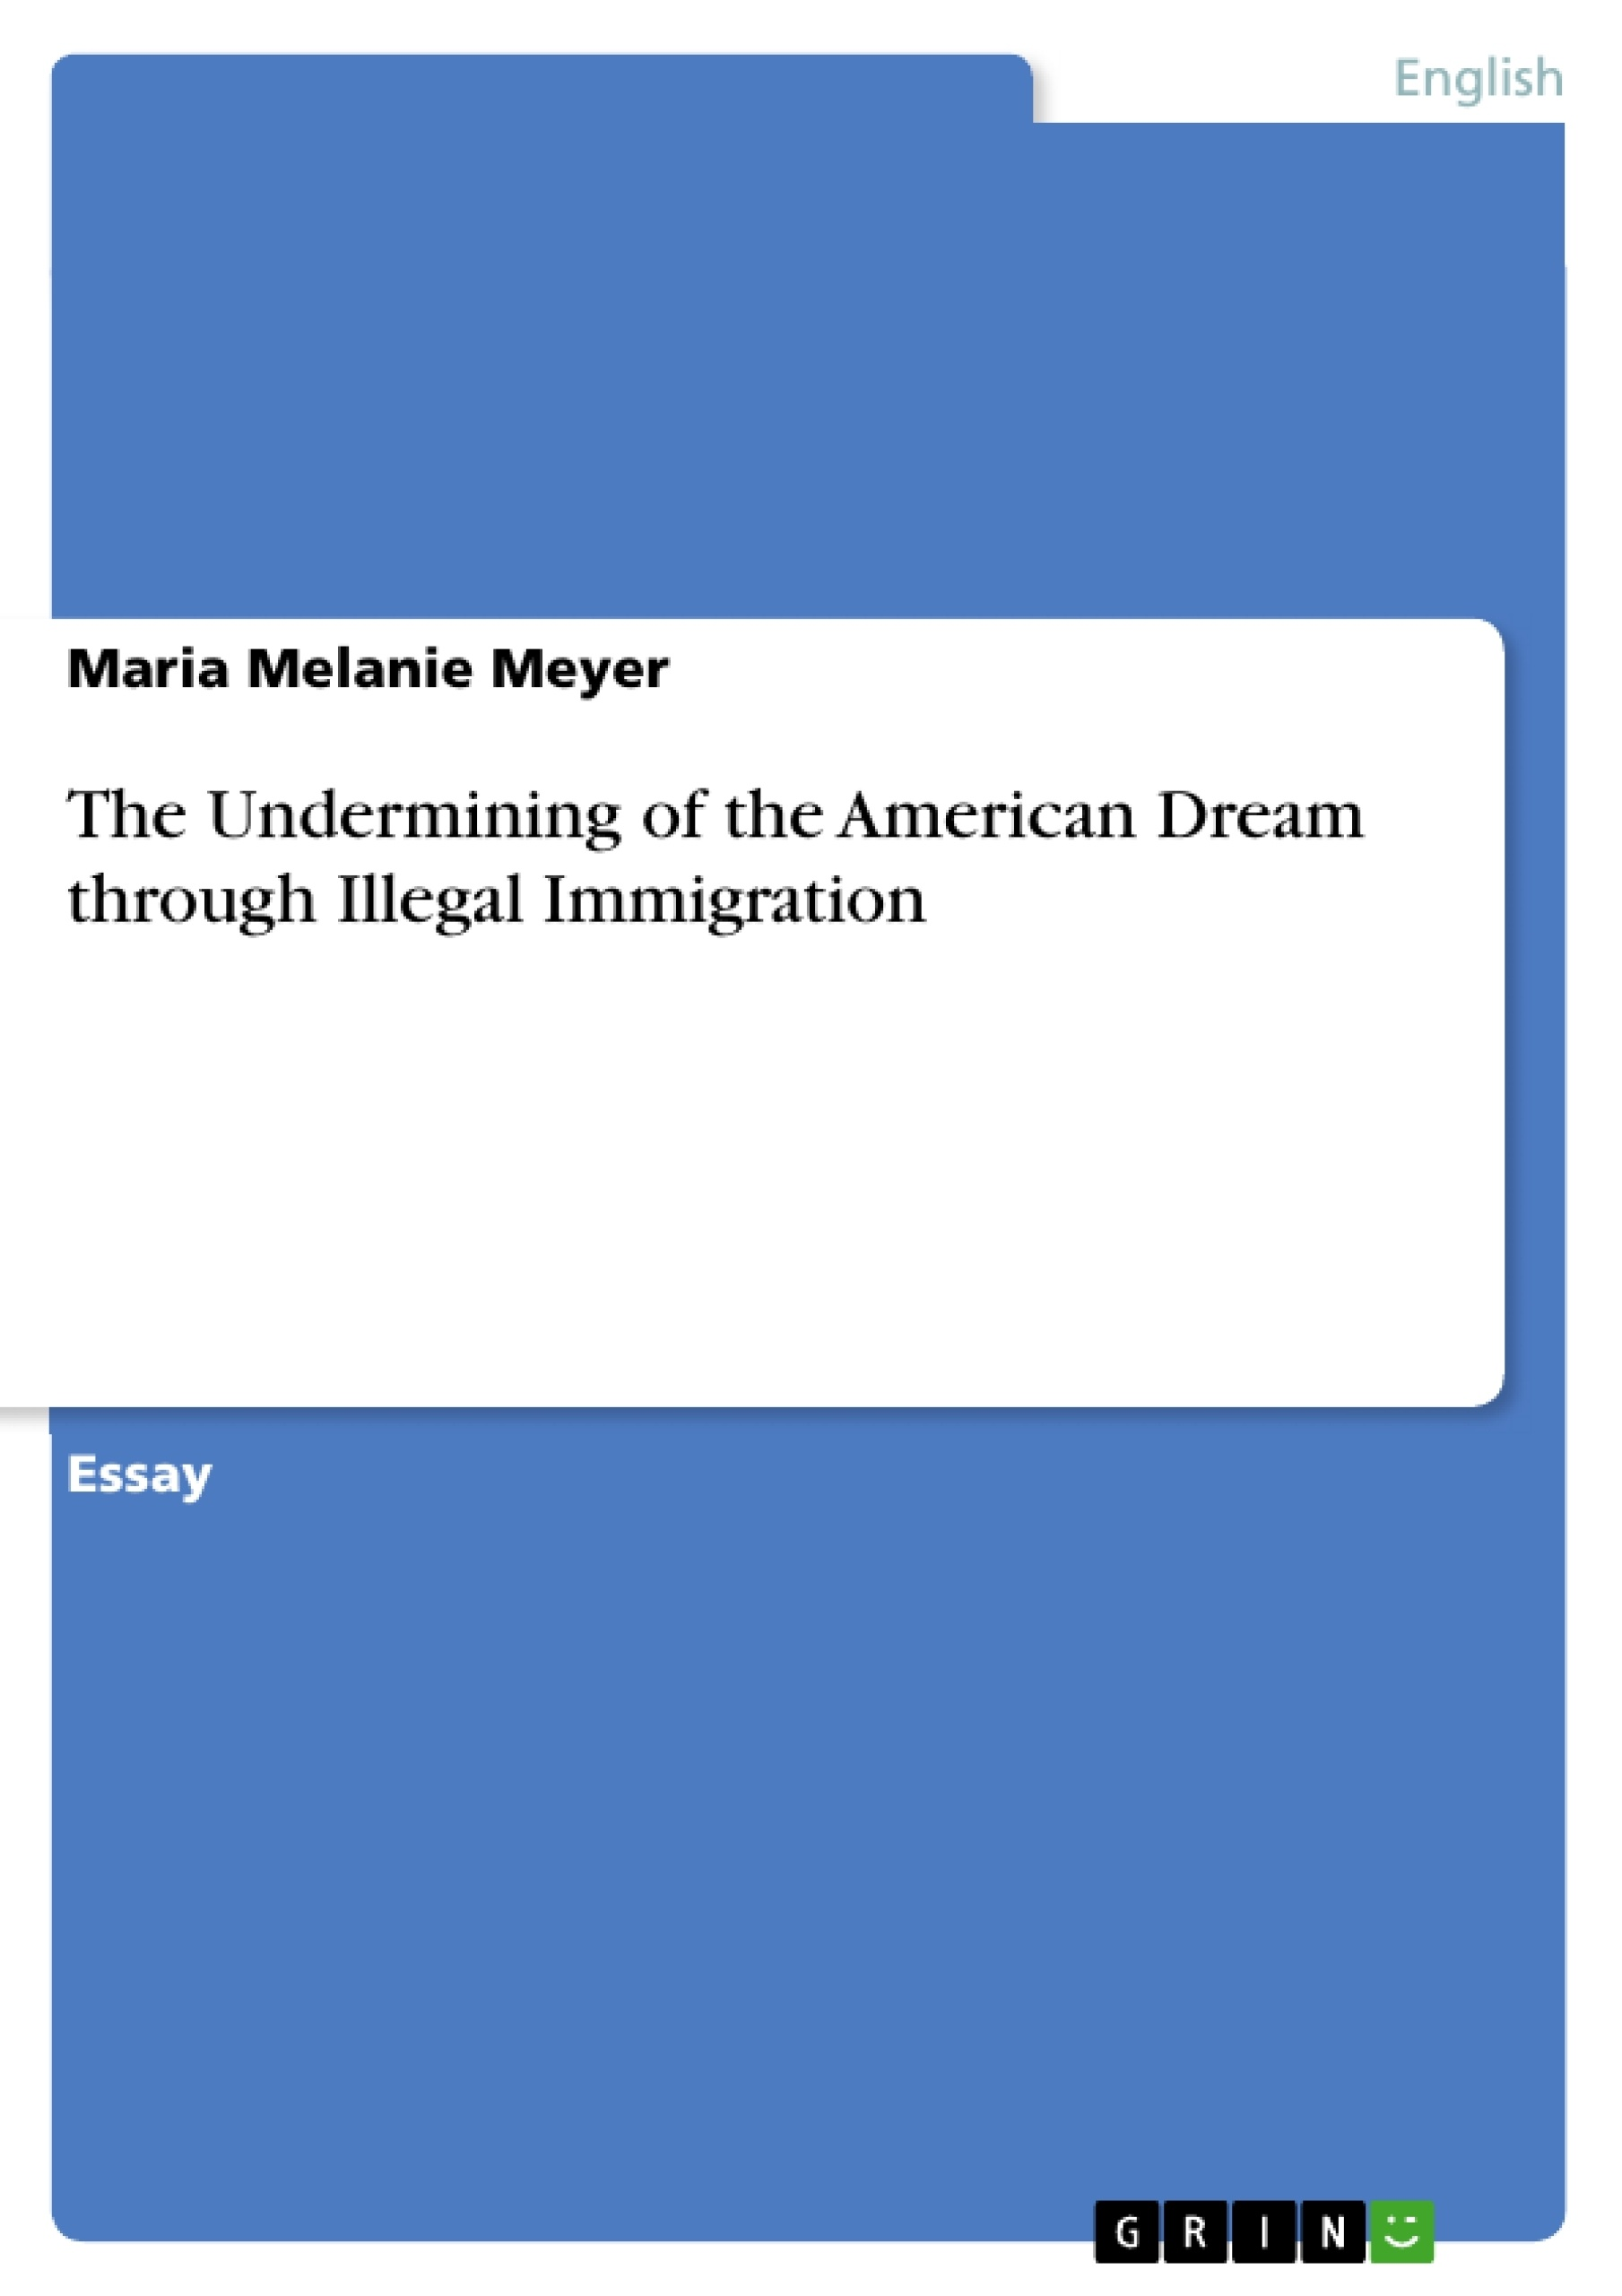 Title: The Undermining of the American Dream through Illegal Immigration